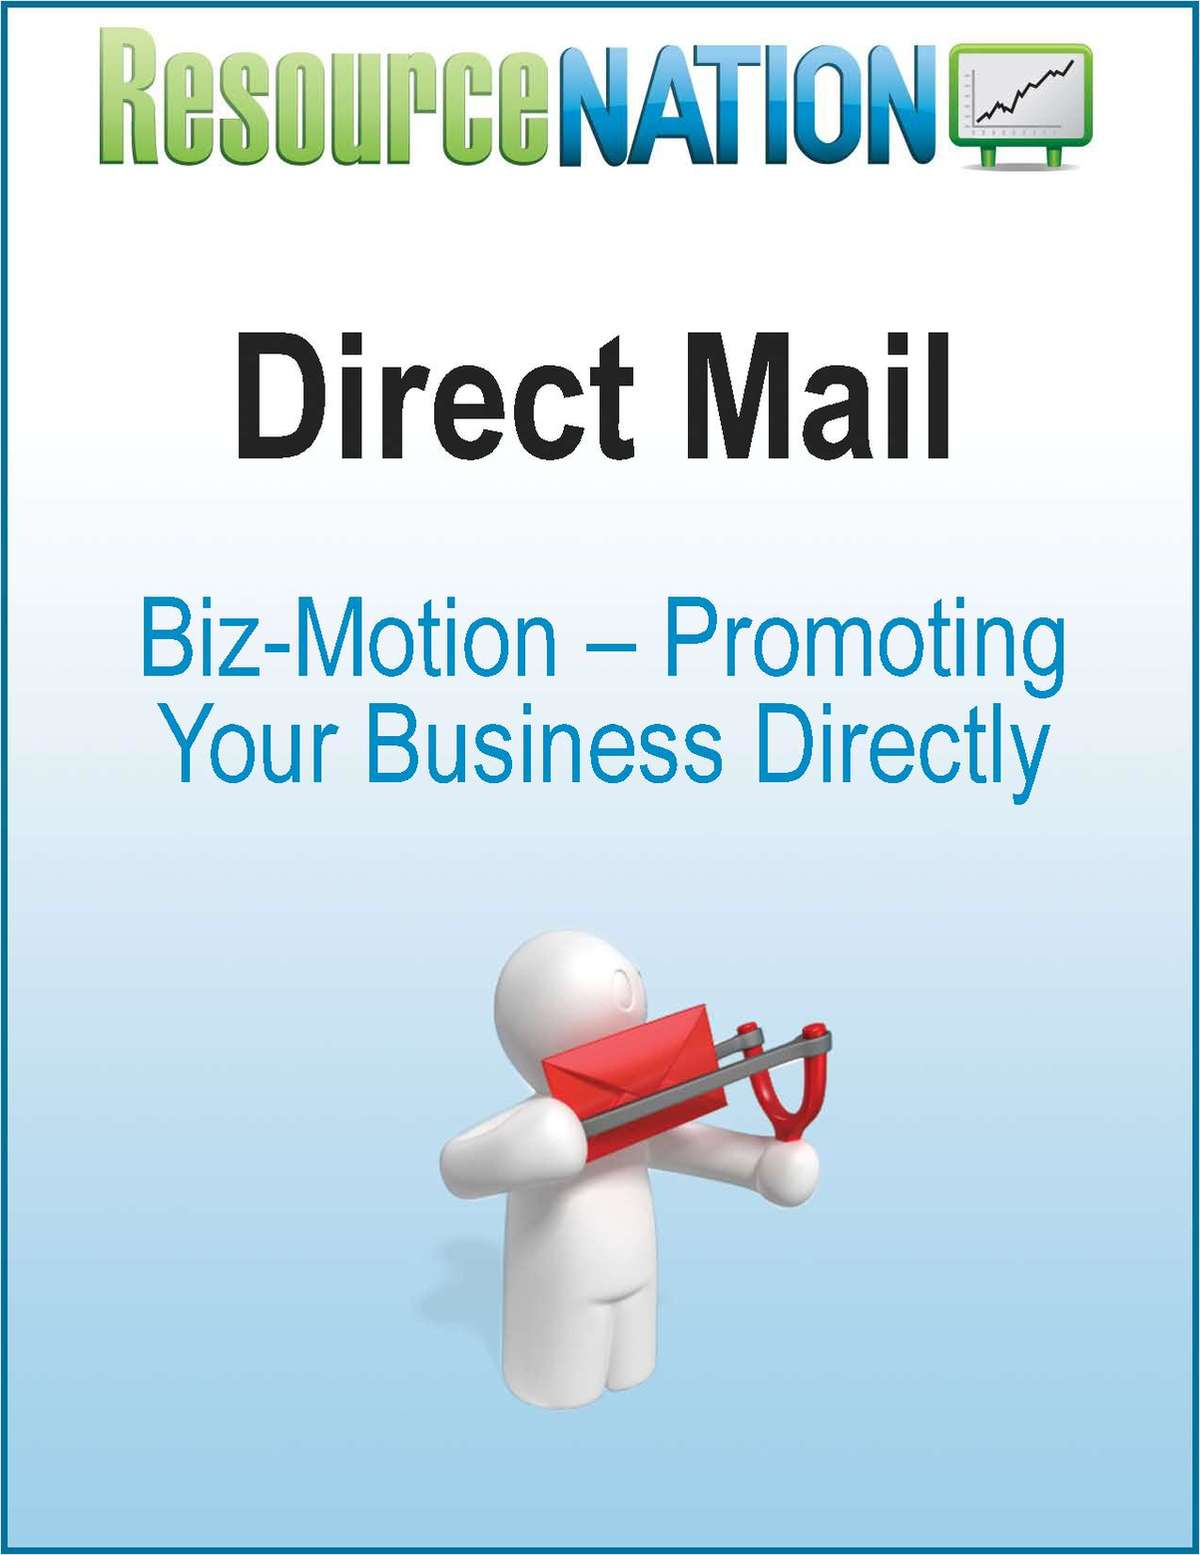 Using Direct Mail Marketing to Grow Your Business